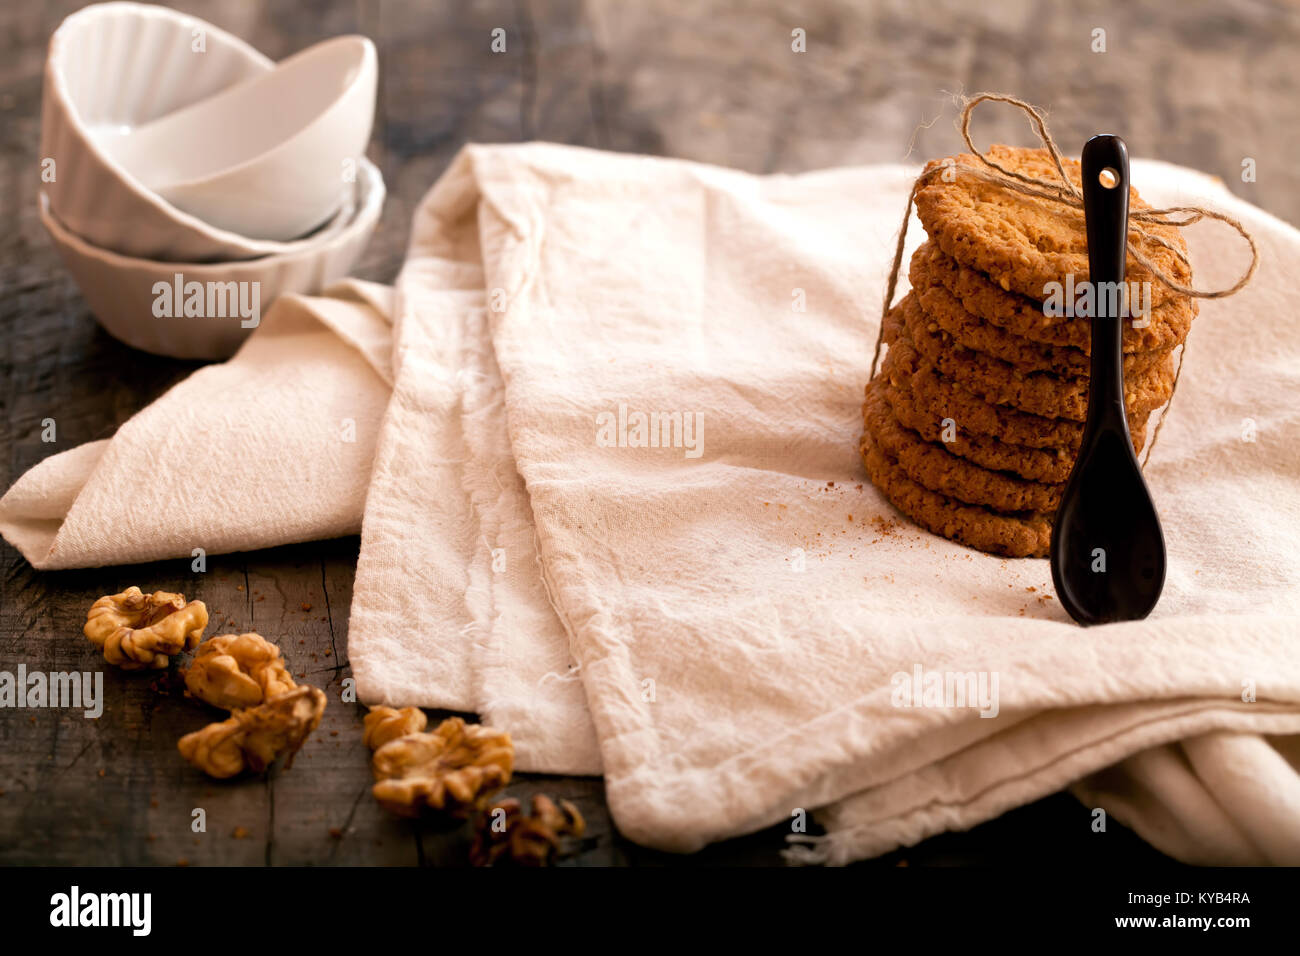 Home walnuts biscuits on a wooden background. Sugary baked biscuits with walnuts. Closeup - Stock Image